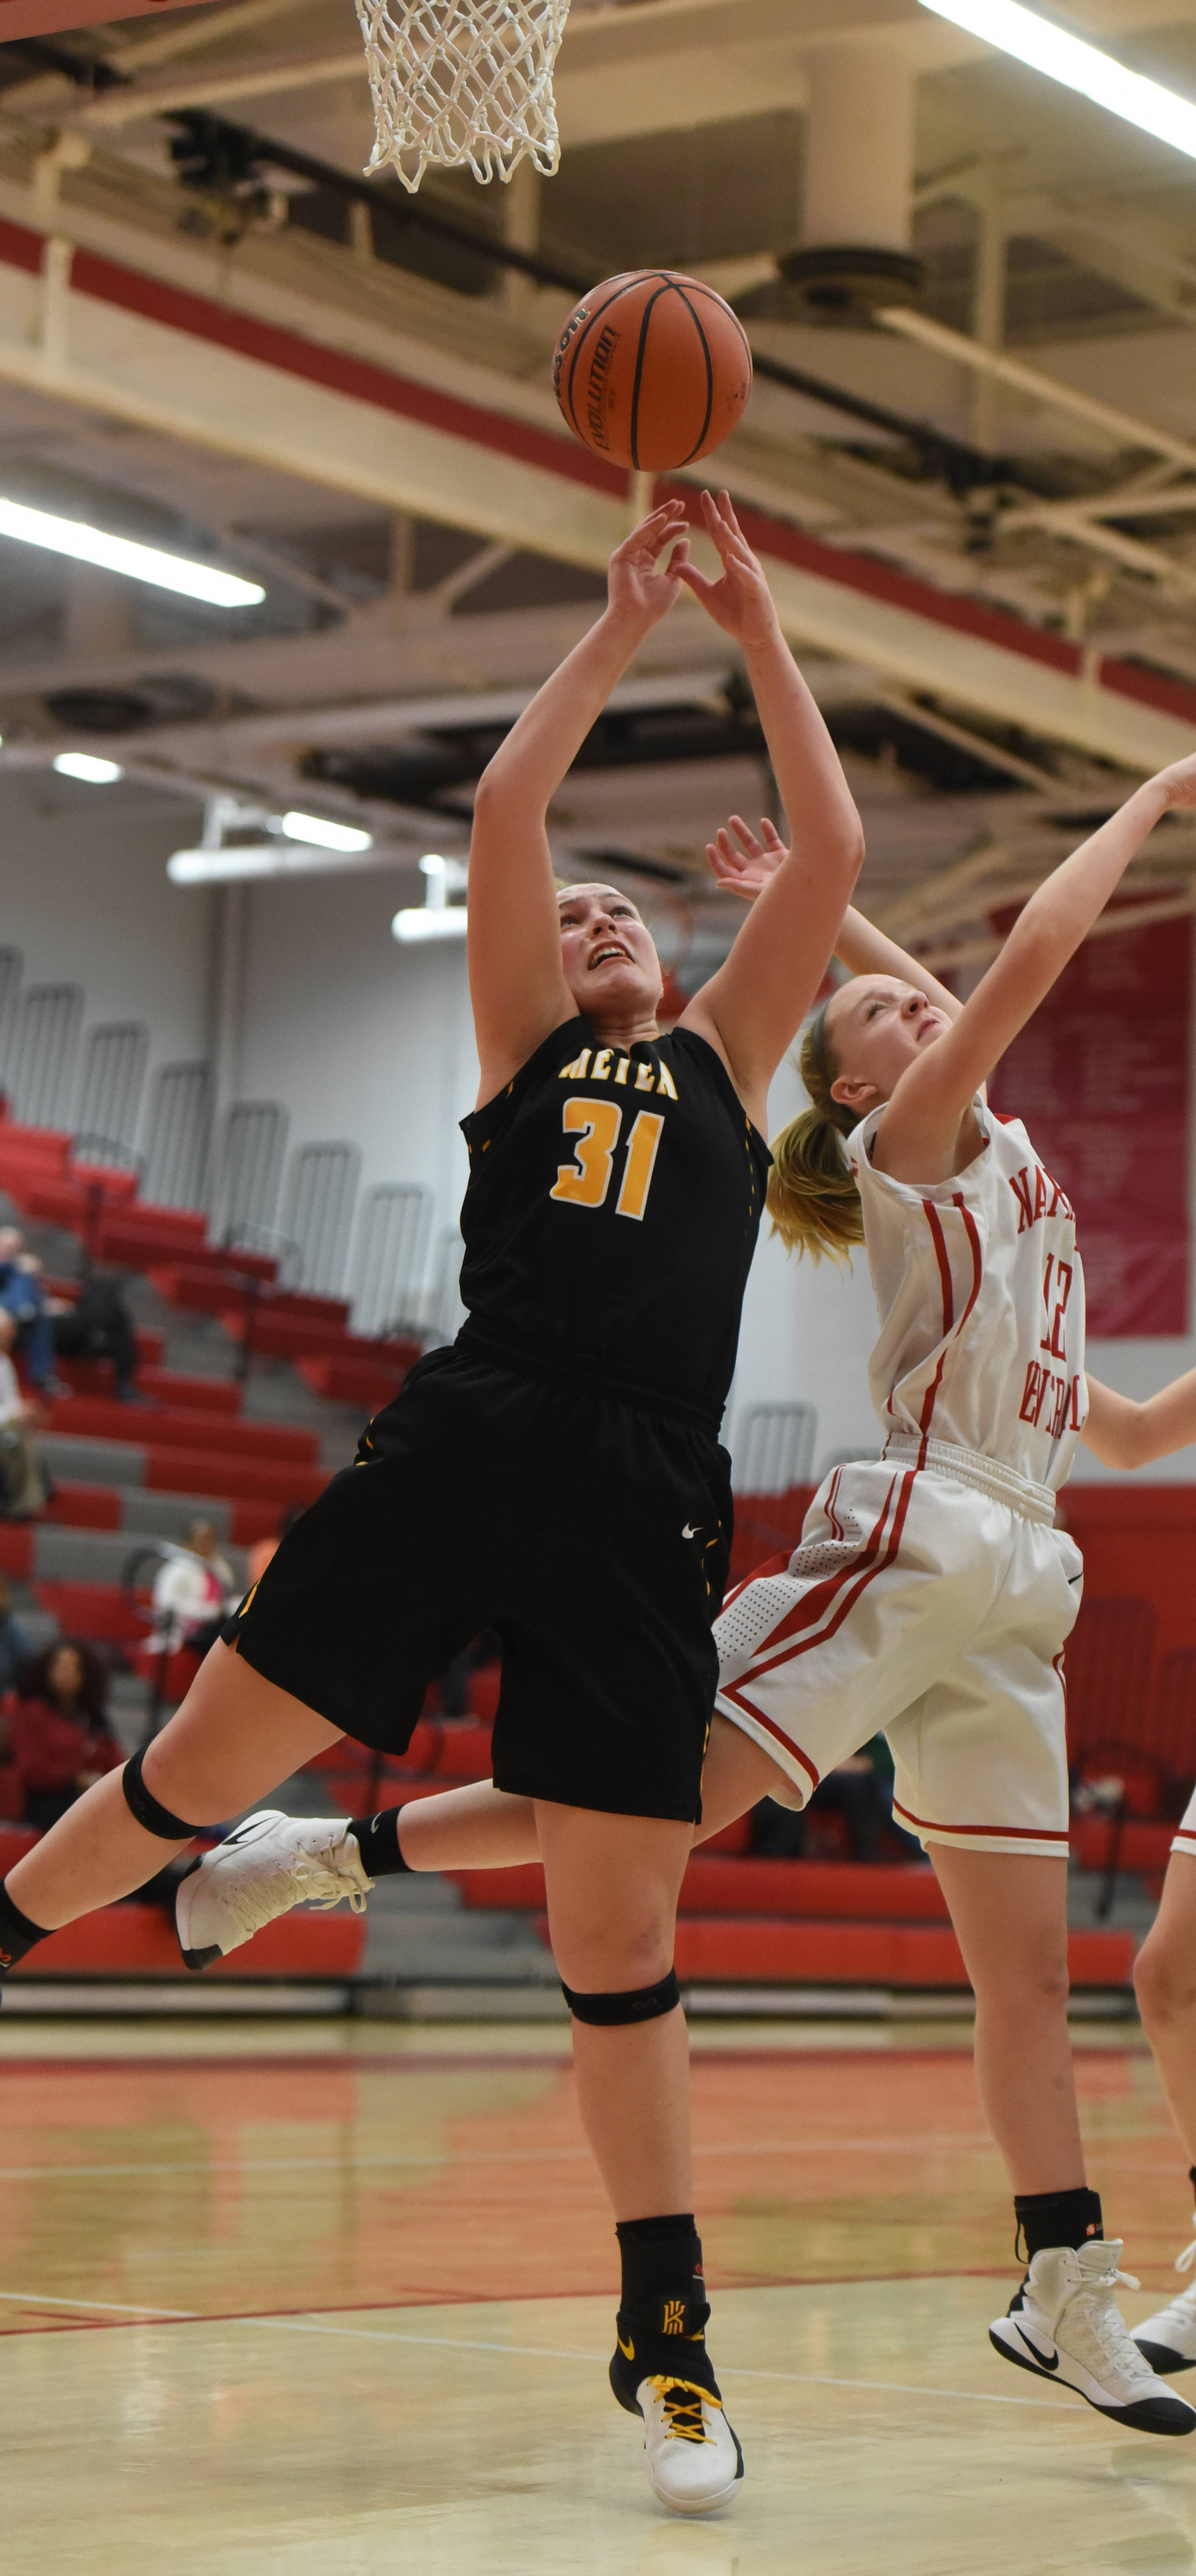 Metea Valley's Ashley Konkle (31) and Naperville Central's Abigail Kincaide (12) vie for a rebound during the Metea Valley at Naperville Central girls basketball game Thursday.